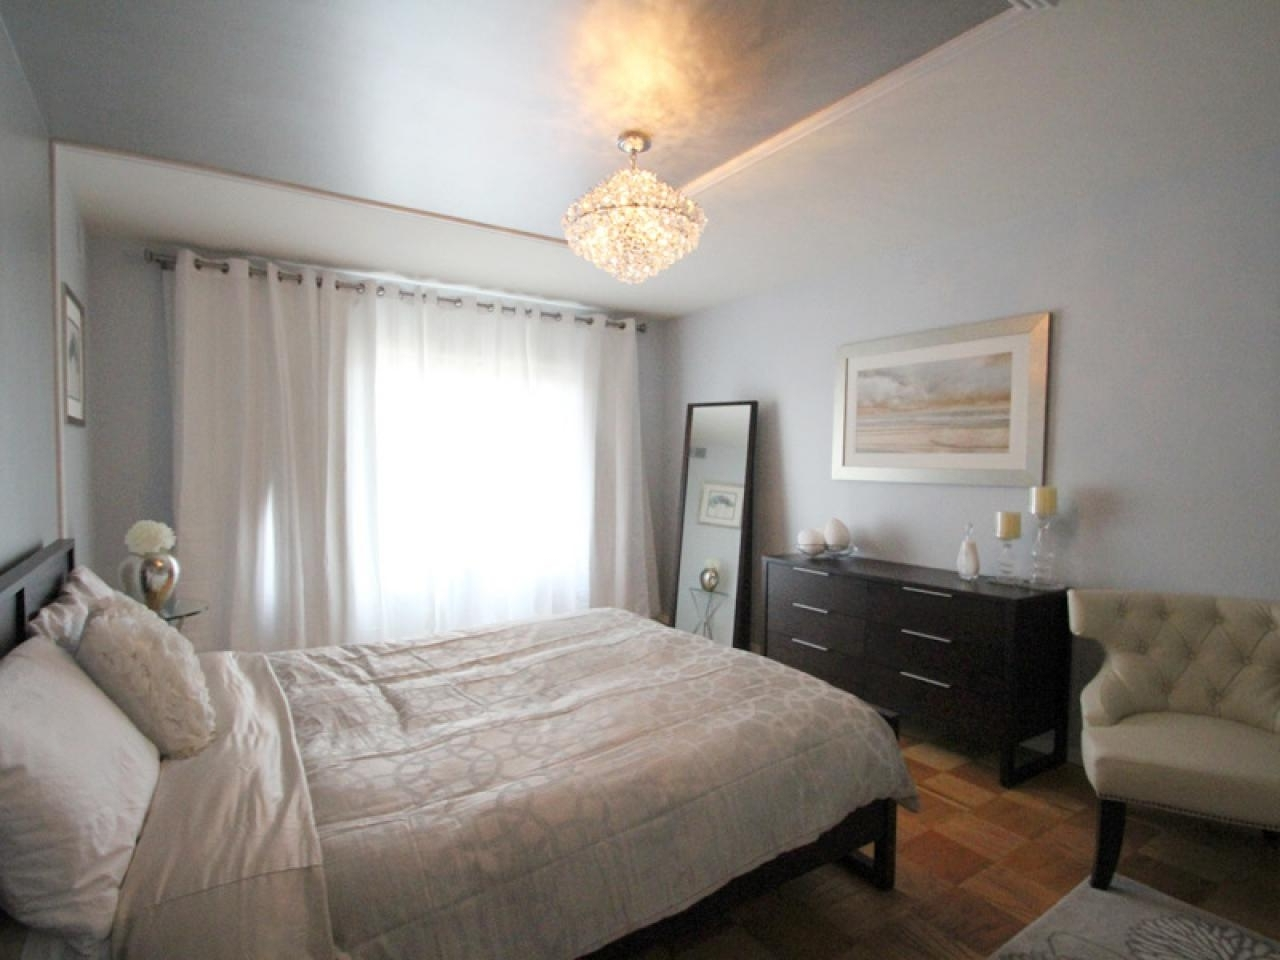 Hgtv Intended For Chandeliers In The Bedroom (View 10 of 20)